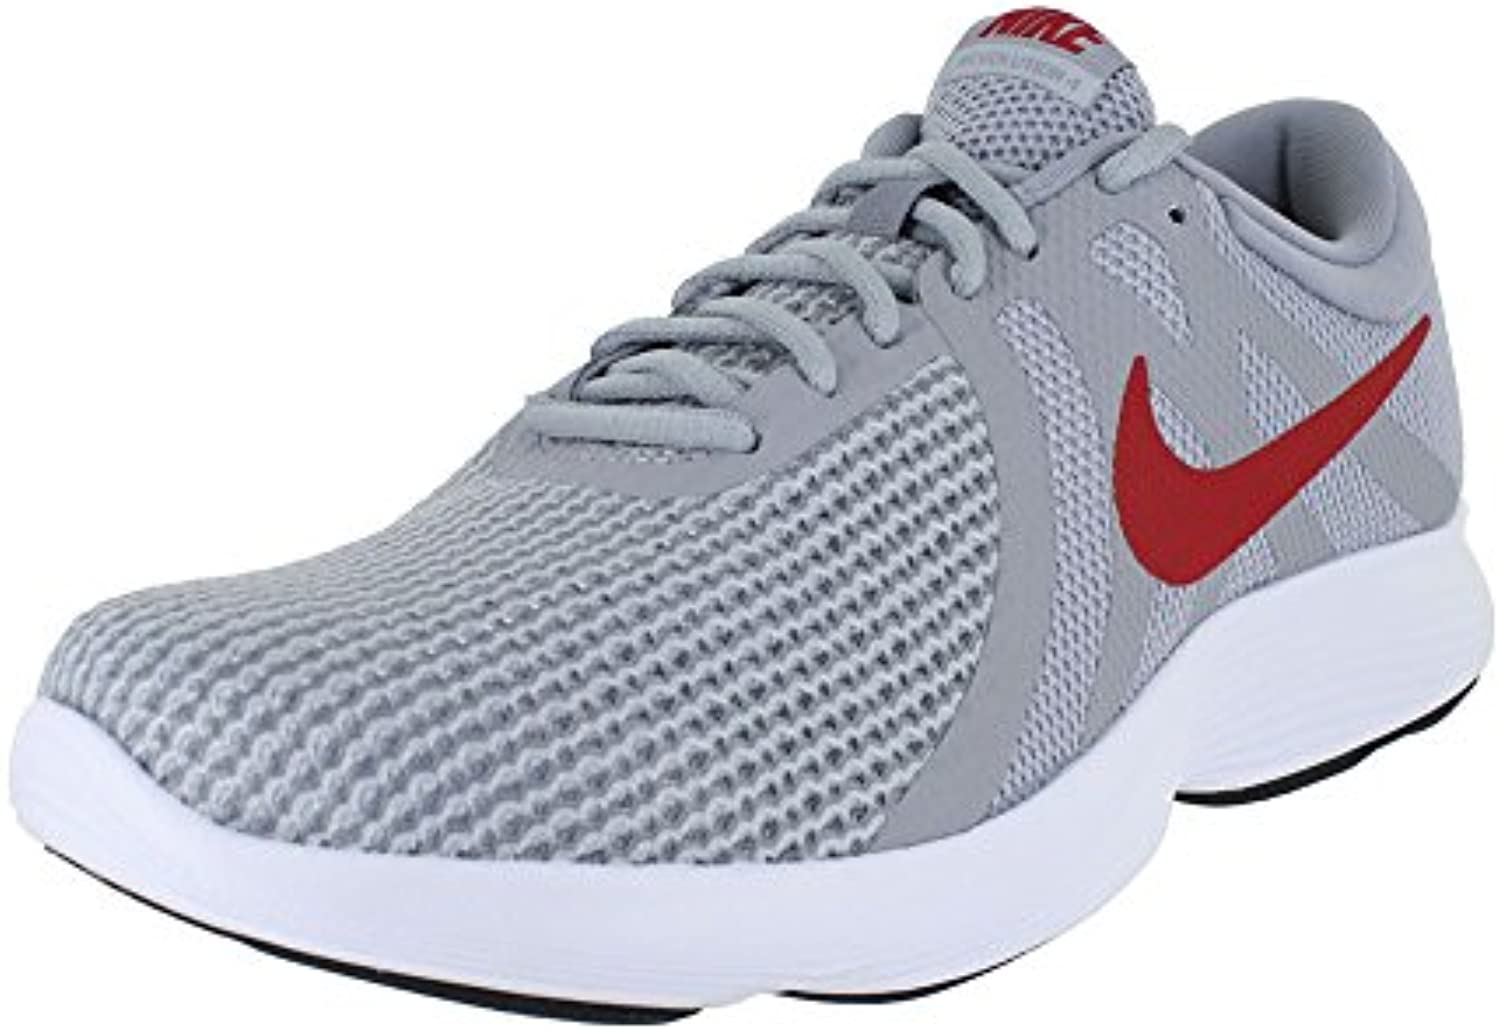 Nike Men's Revolution 4 Running Shoe Wide 4E Wolf Grey/Gym Red/Stealth Size 8.5 Wide 4E